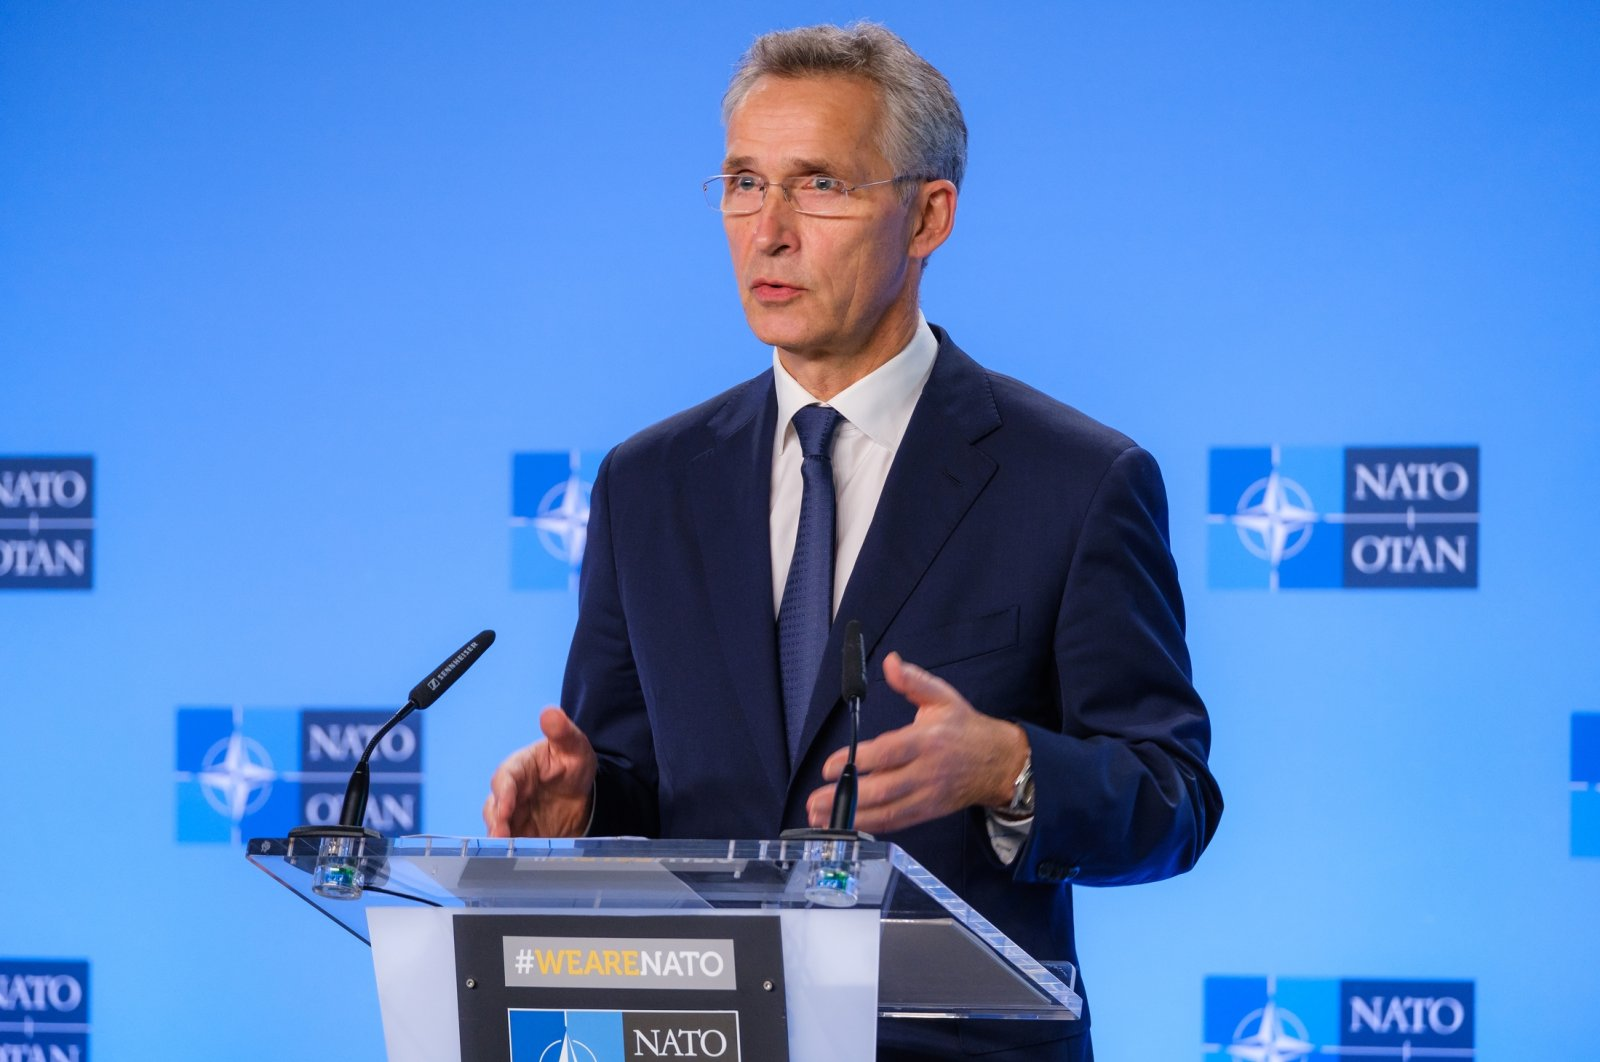 NATO Secretary-General Jens Stoltenberg speaks during a press conference in Brussels, Oct. 21, 2020. (AA Photo)